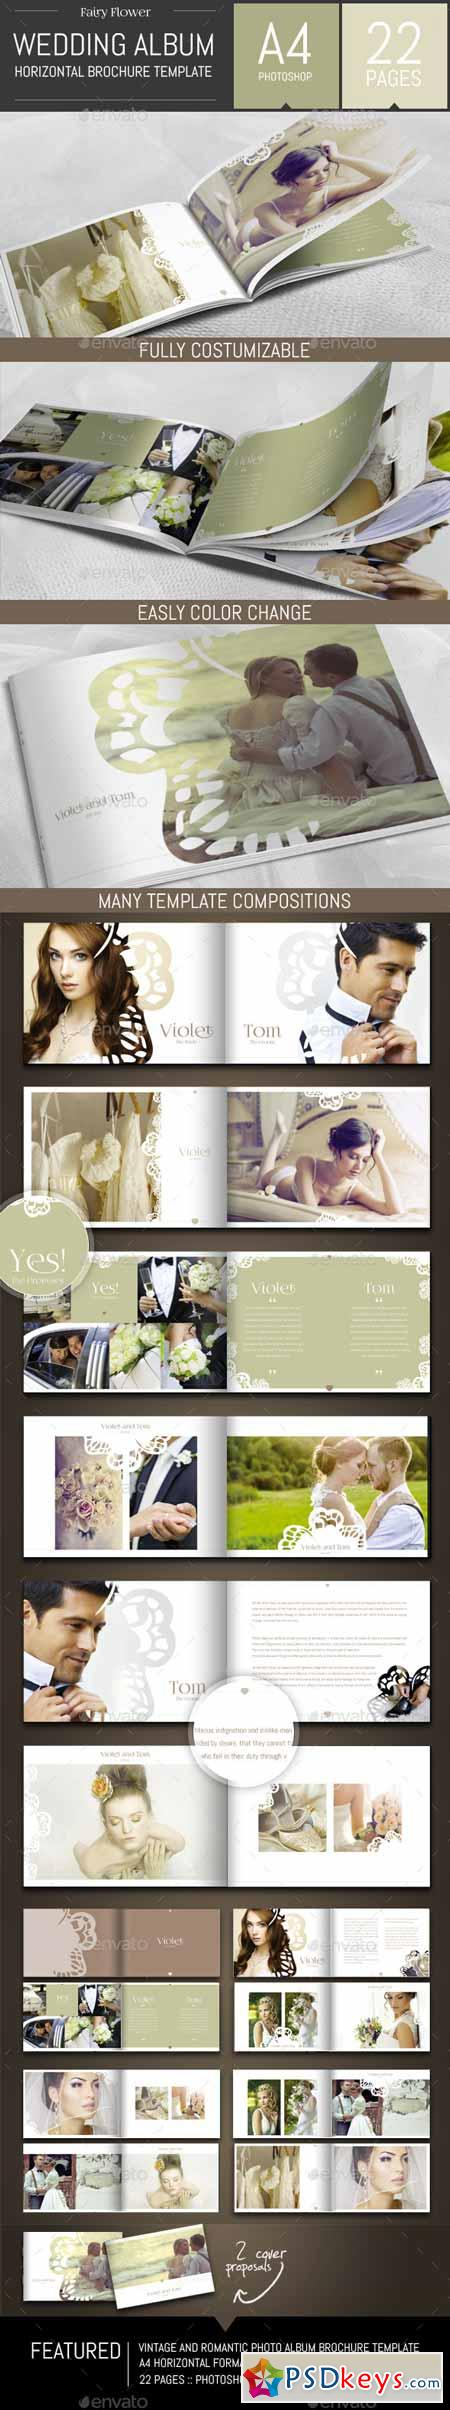 wedding photo album templates in photoshop - wedding photo album horizontal brochure template 9255724